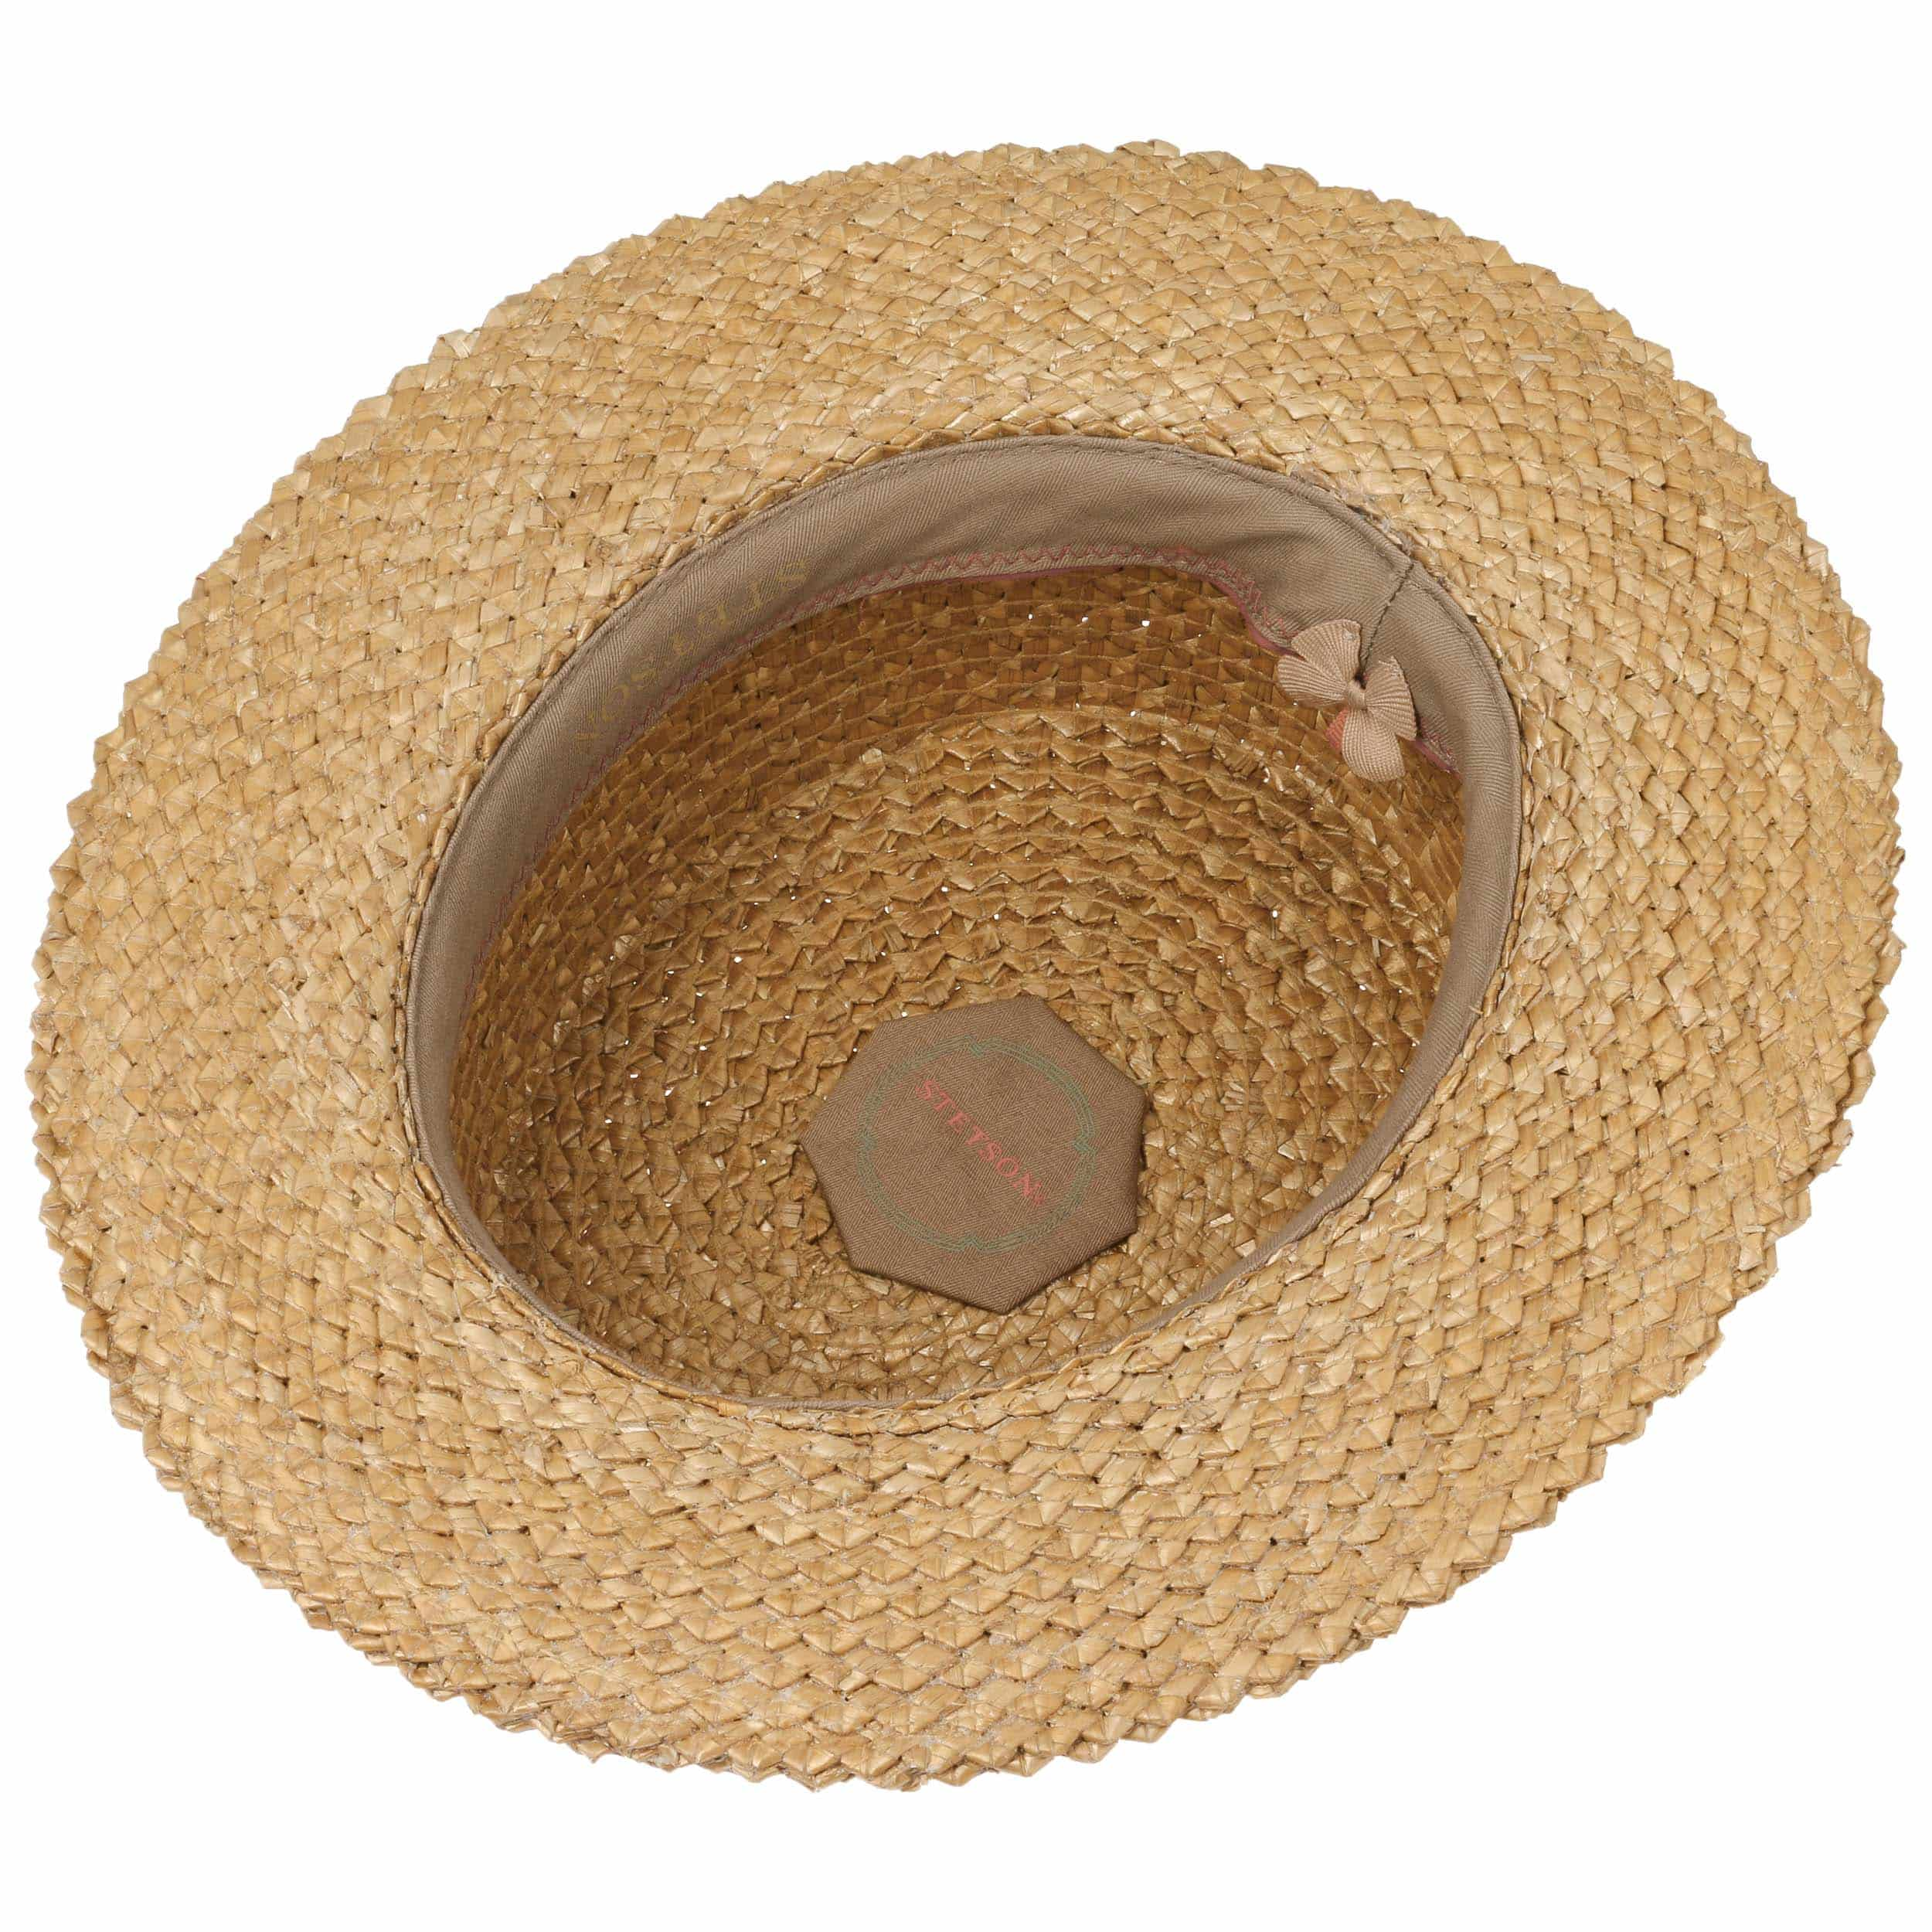 ... Sombrero Canotier Vintage Boater by Stetson - natural 2 ... 24aa400d0ad